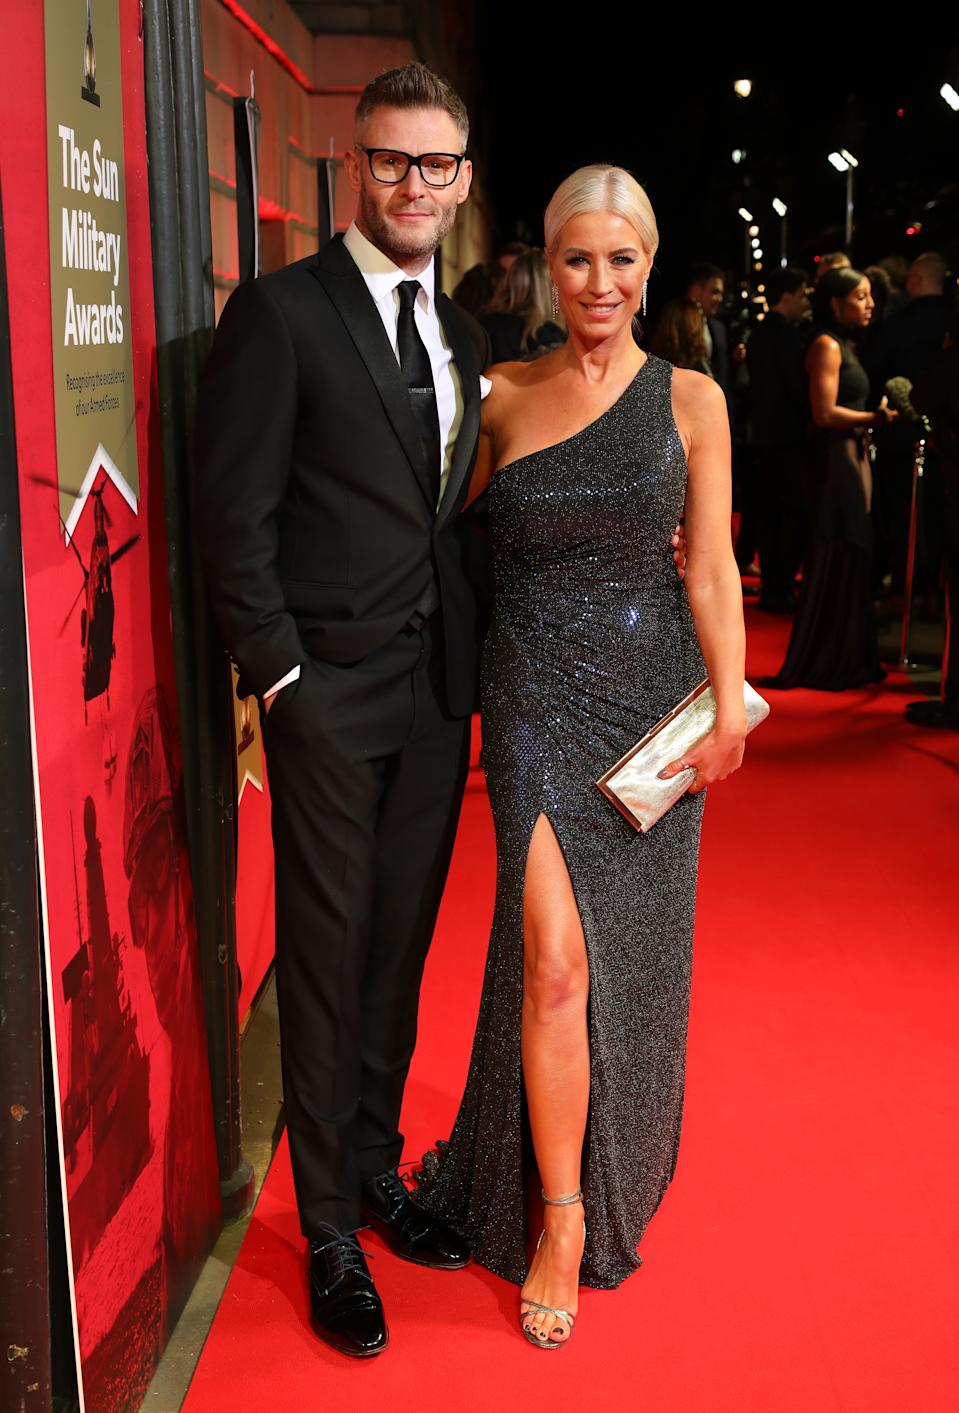 Eddie Boxshall and Denise van Outen attending The Sun Military Awards 2020 held at the Banqueting House, London. (Photo by David Parry/PA Images via Getty Images)